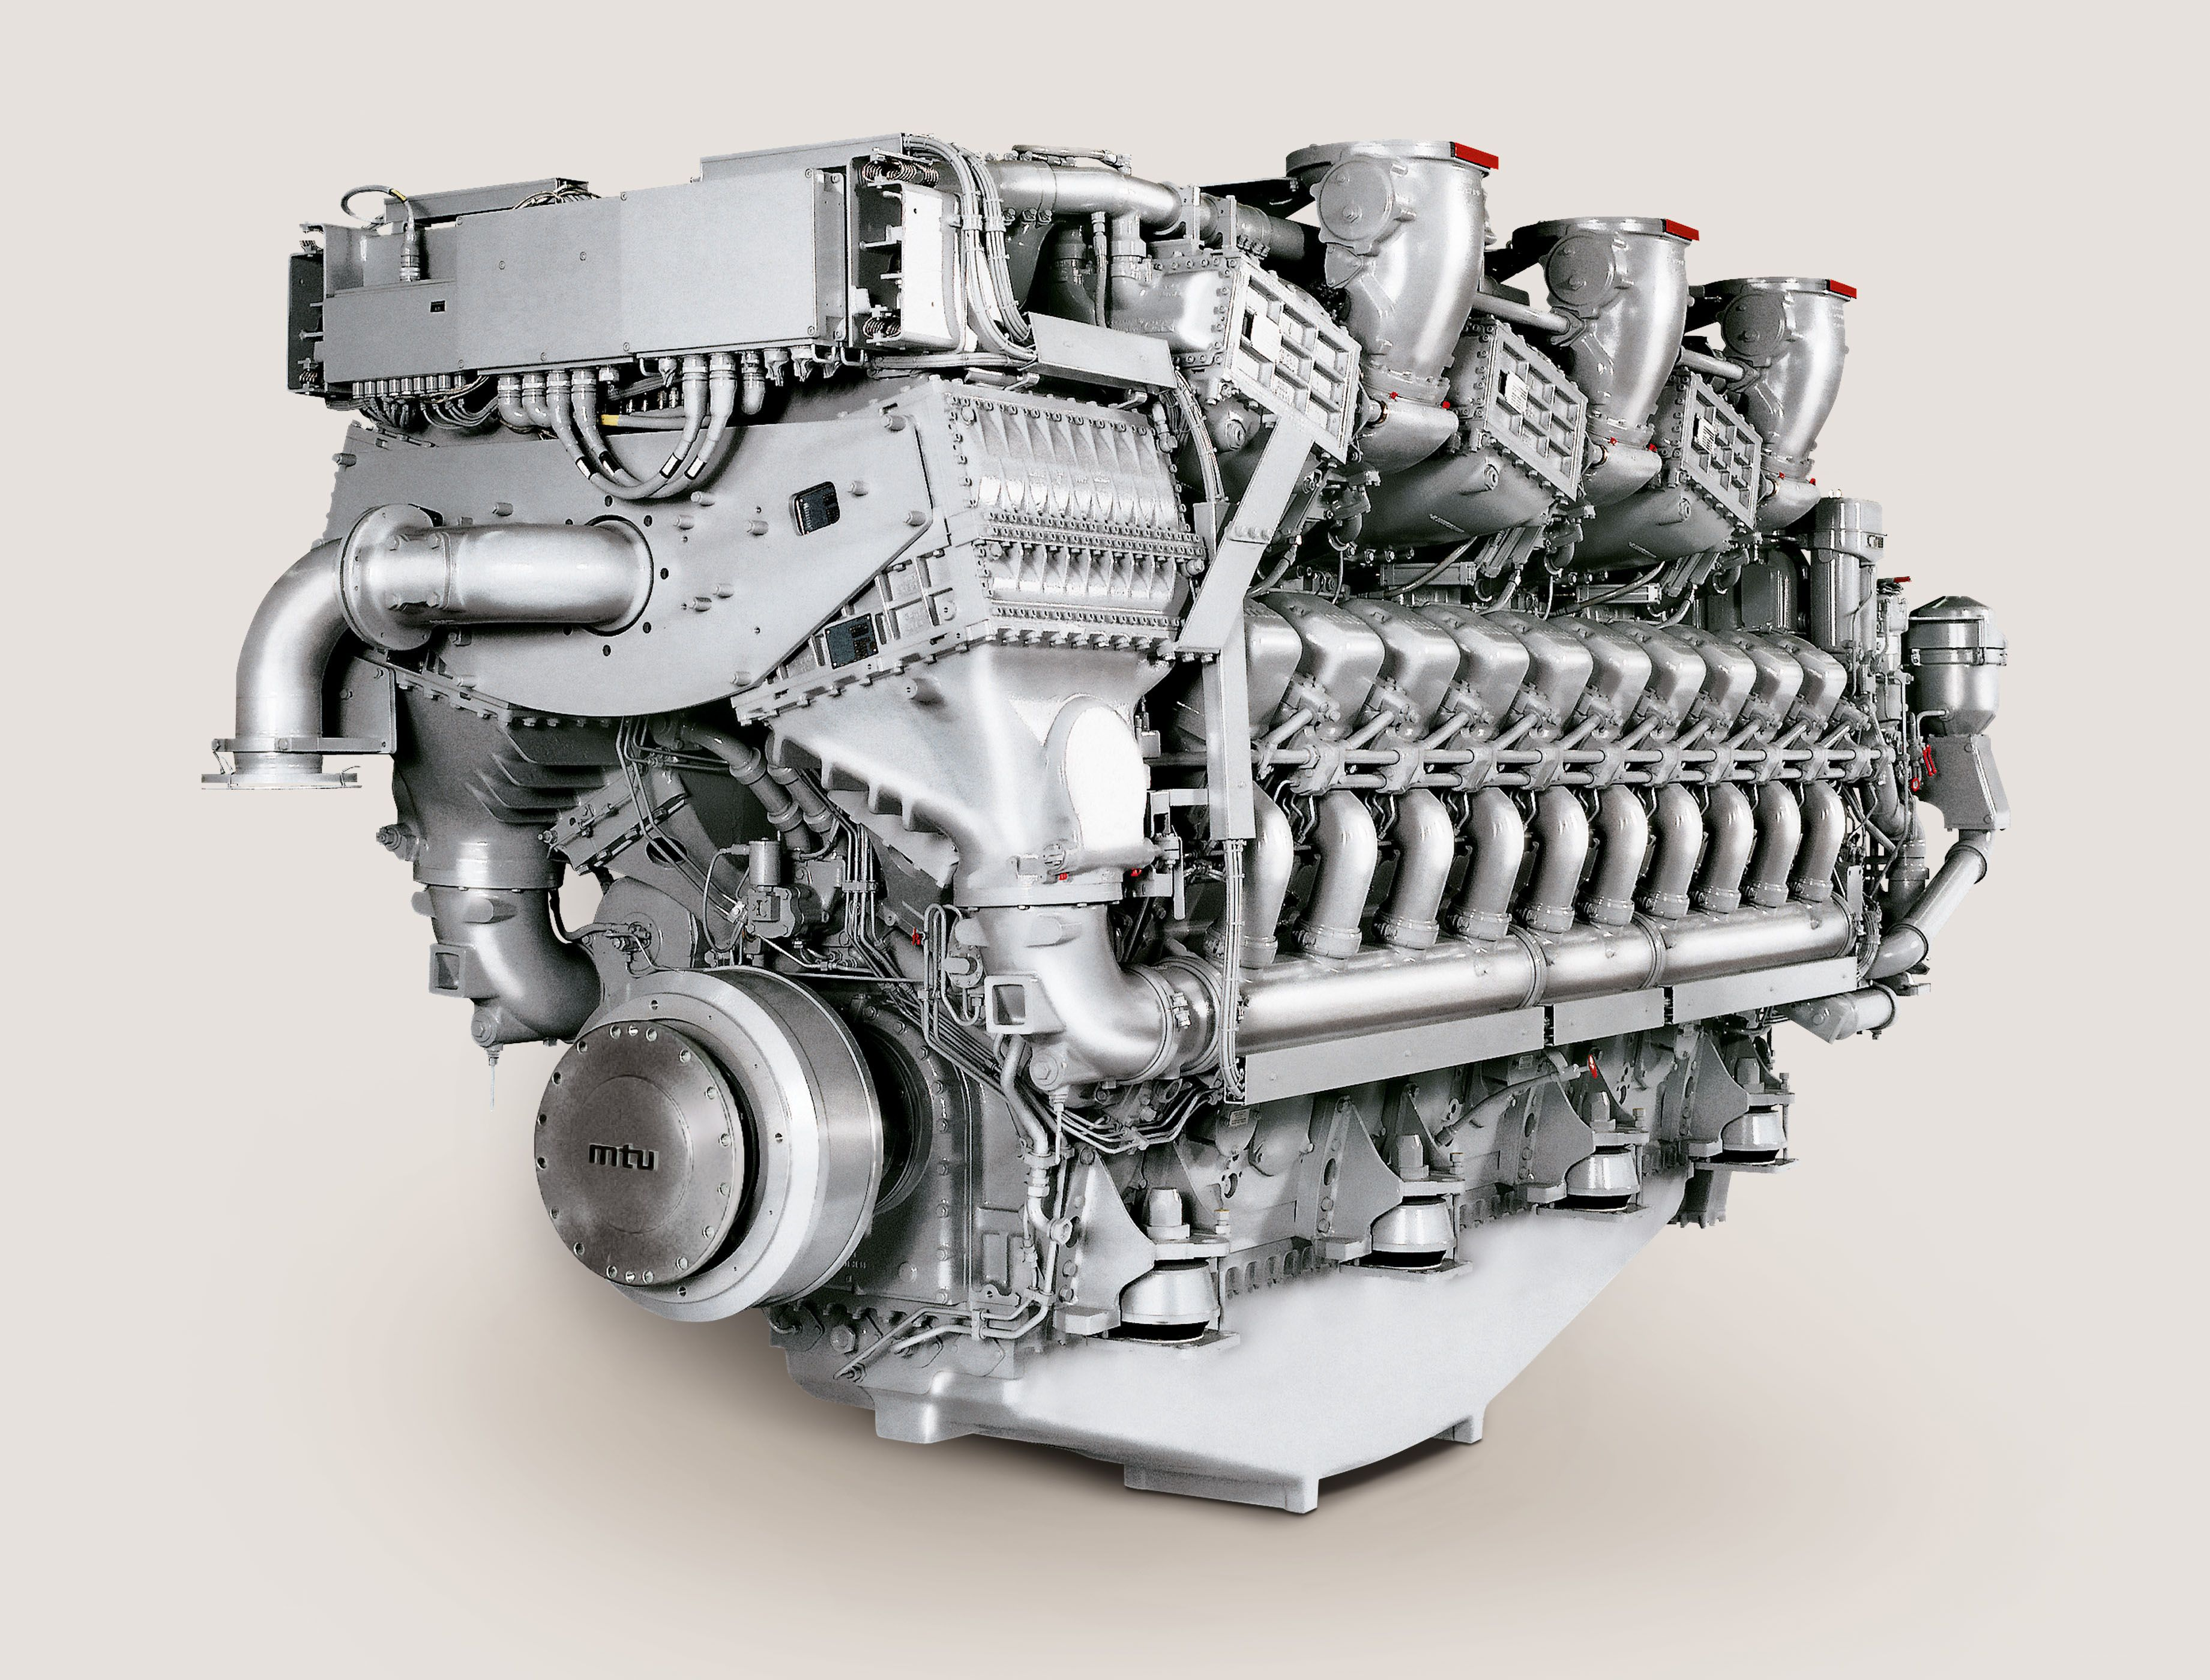 mtu 8v 396 maintenance manual